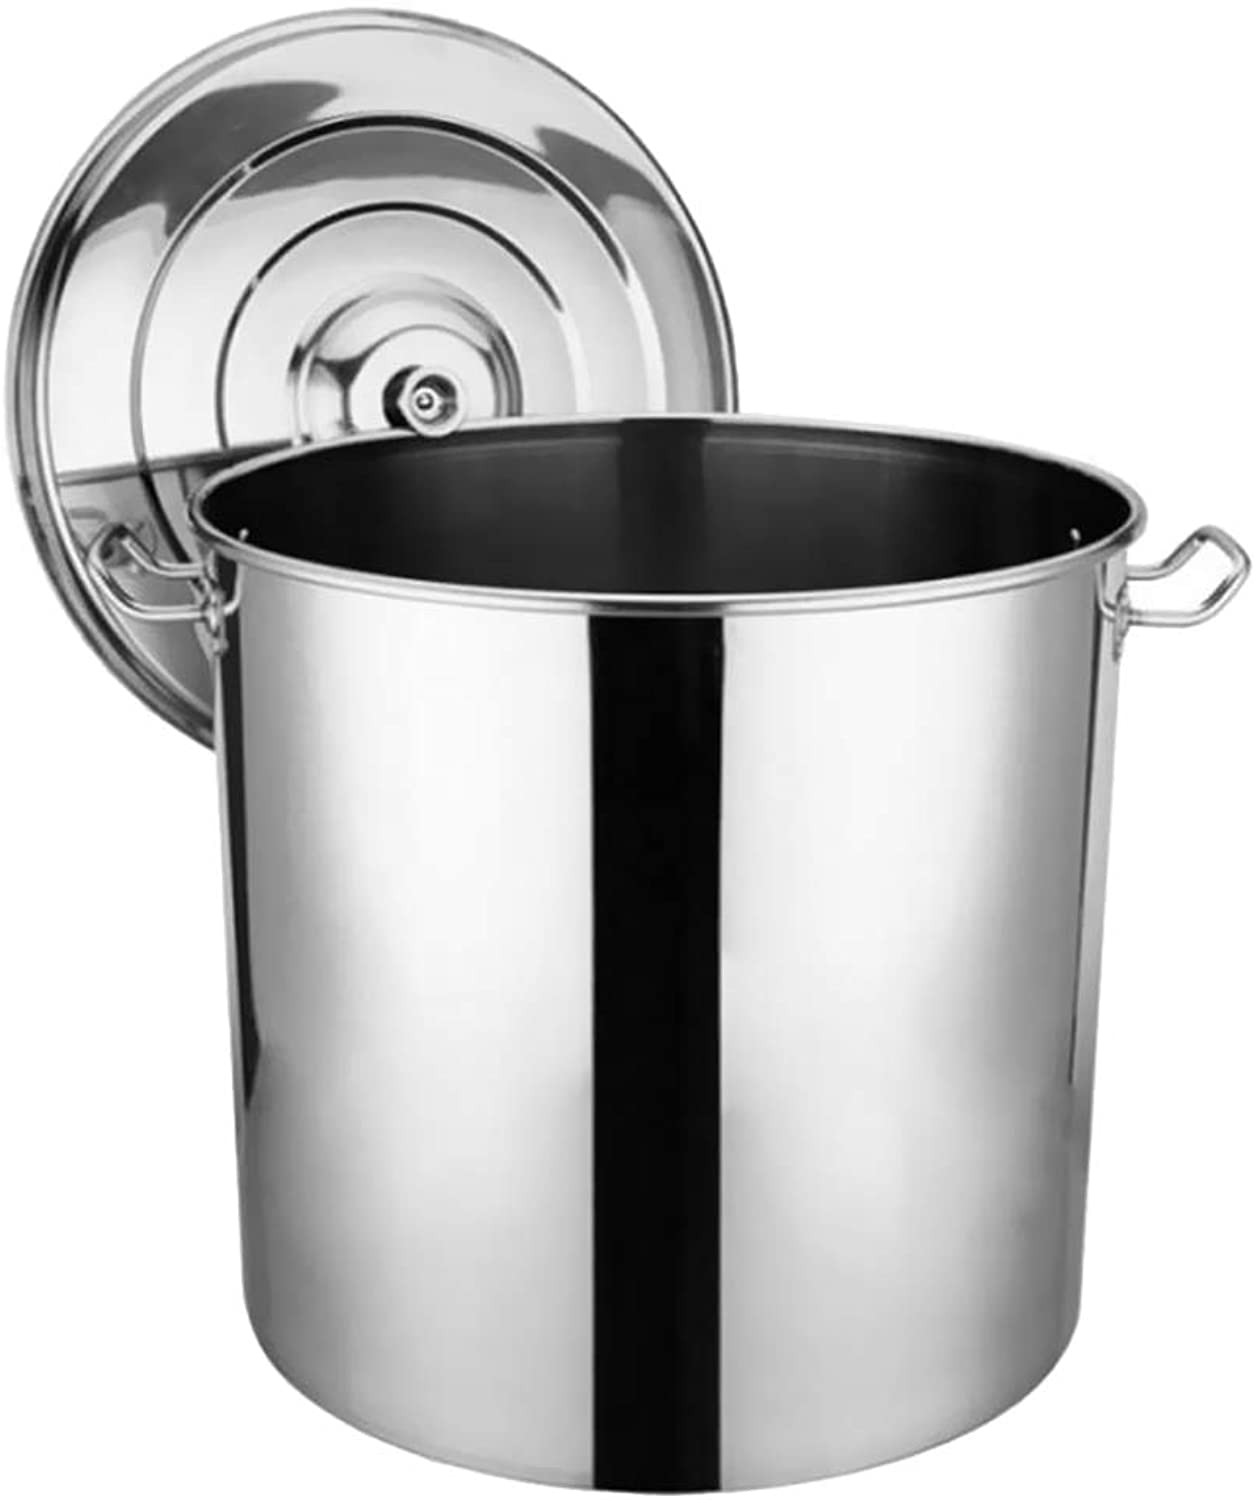 Baosity Camping Stainless Steel Stock Pot Cooking Soup Pot Stew Casserole Boiling